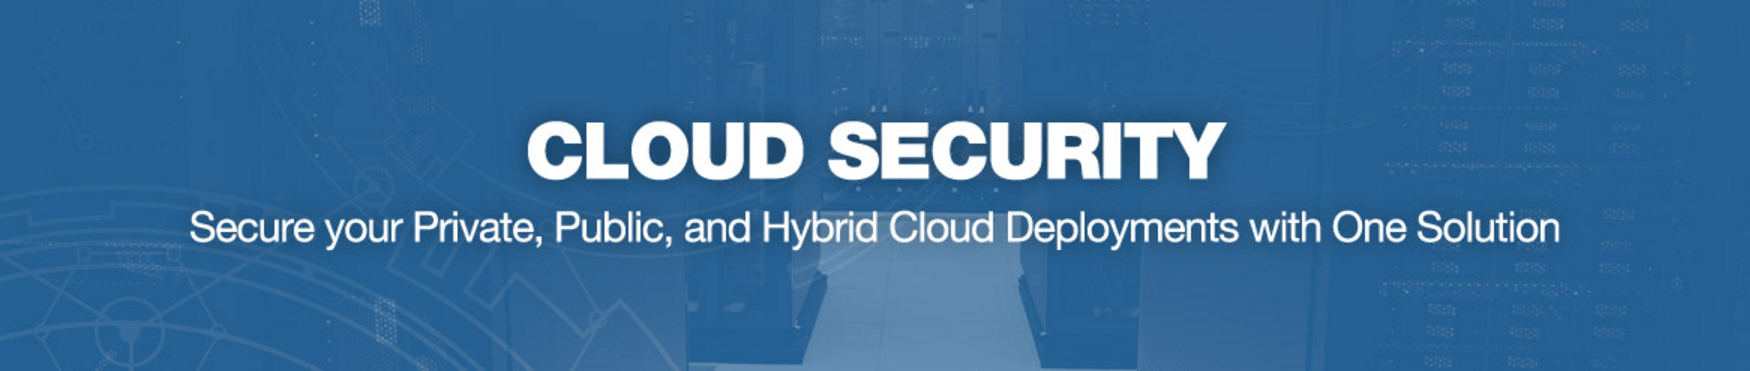 Fortinet Cloud Security